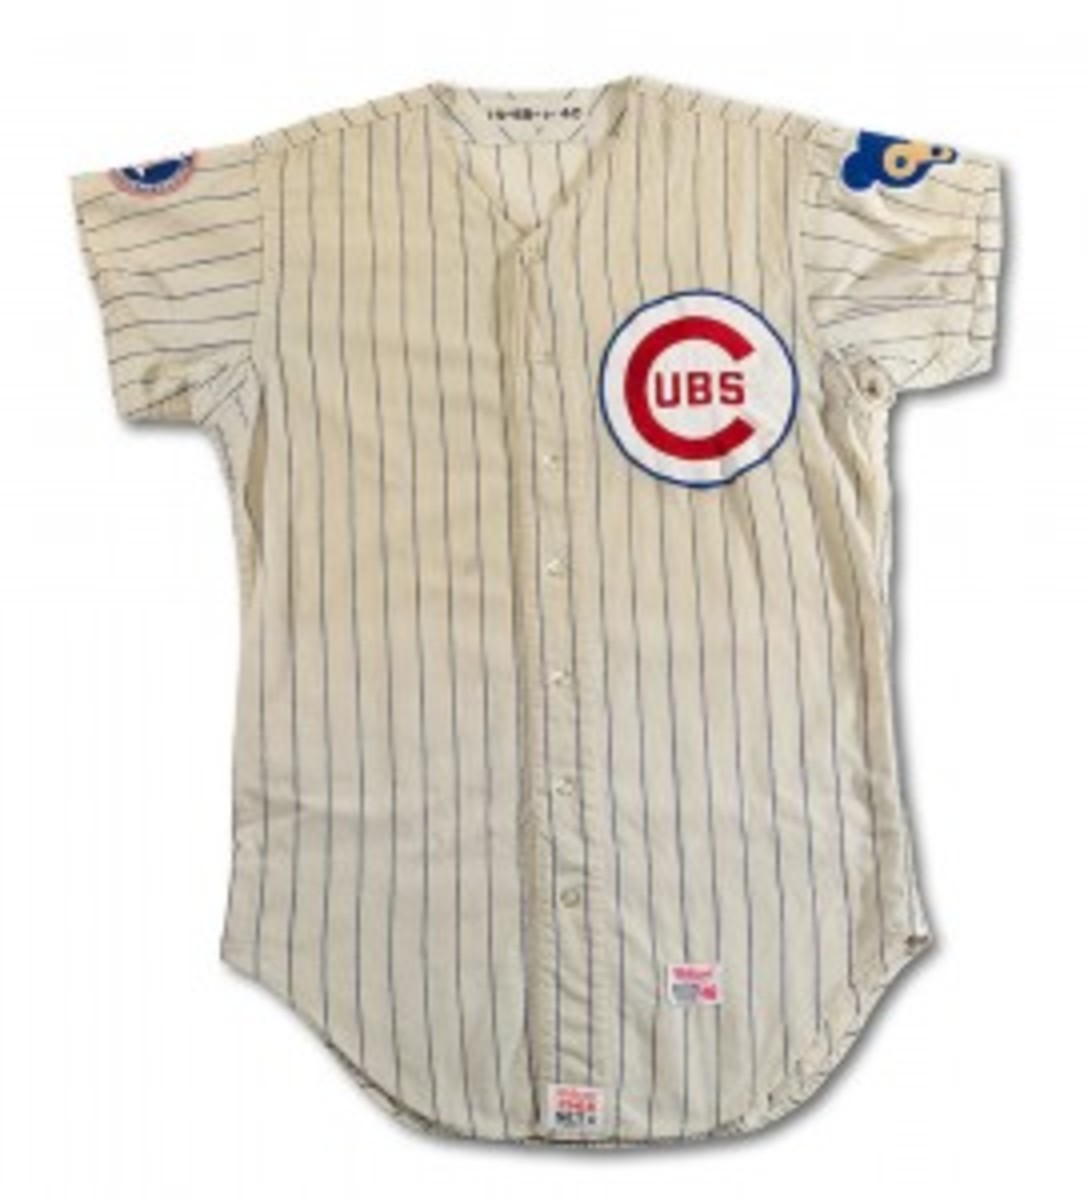 68 Banks Jersey - Front